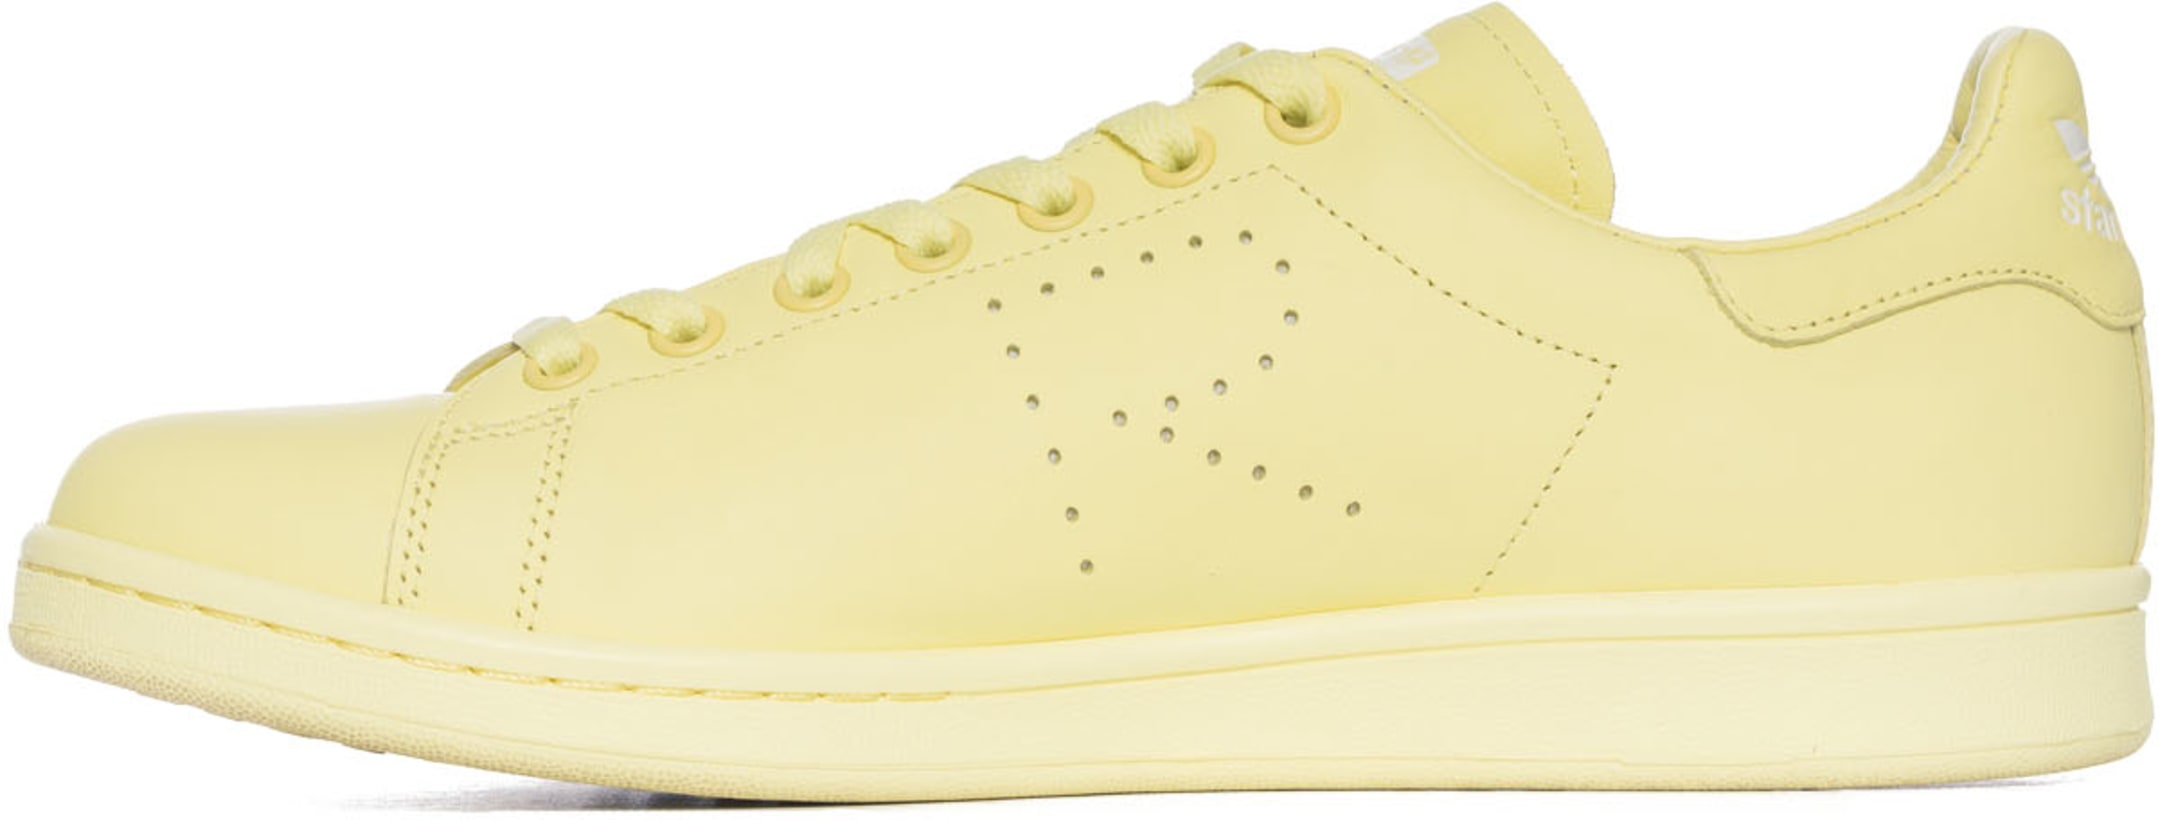 adidas by Raf Simons - Raf Simons Stan Smith - Blush Yellow